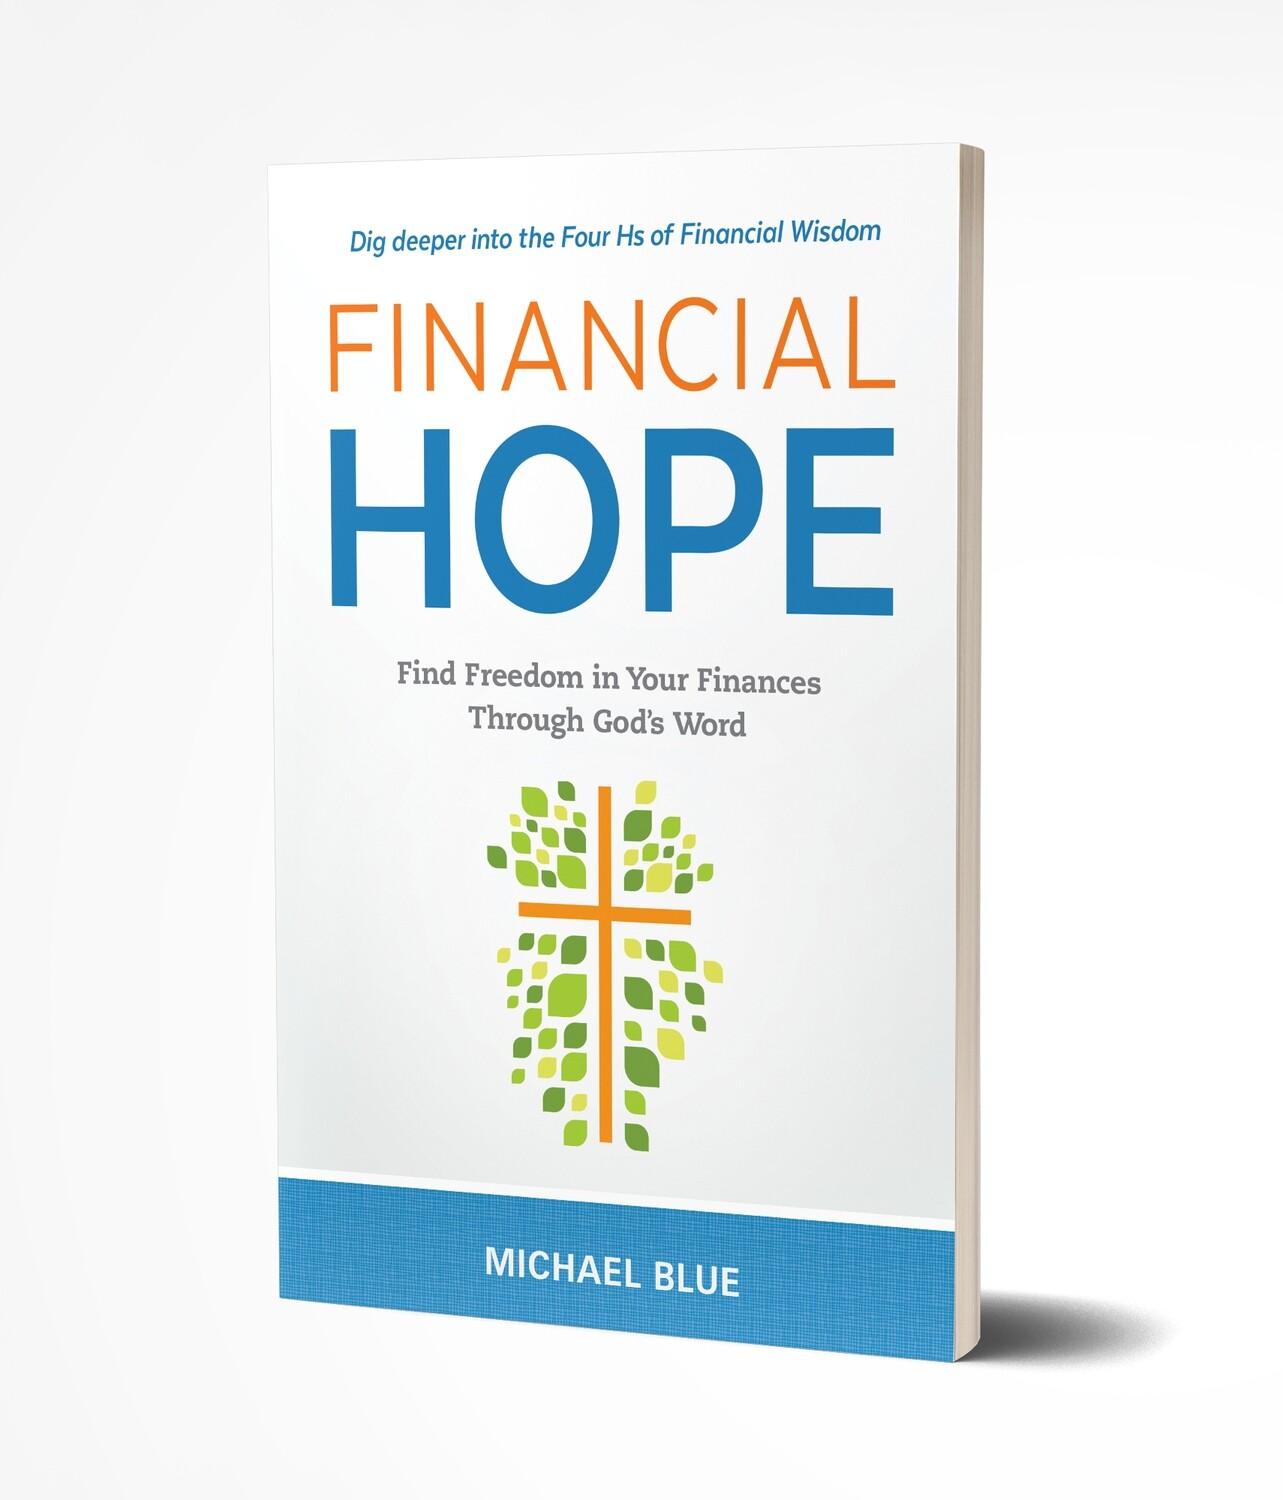 Financial Hope: Find Freedom in Your Finances through God's Word